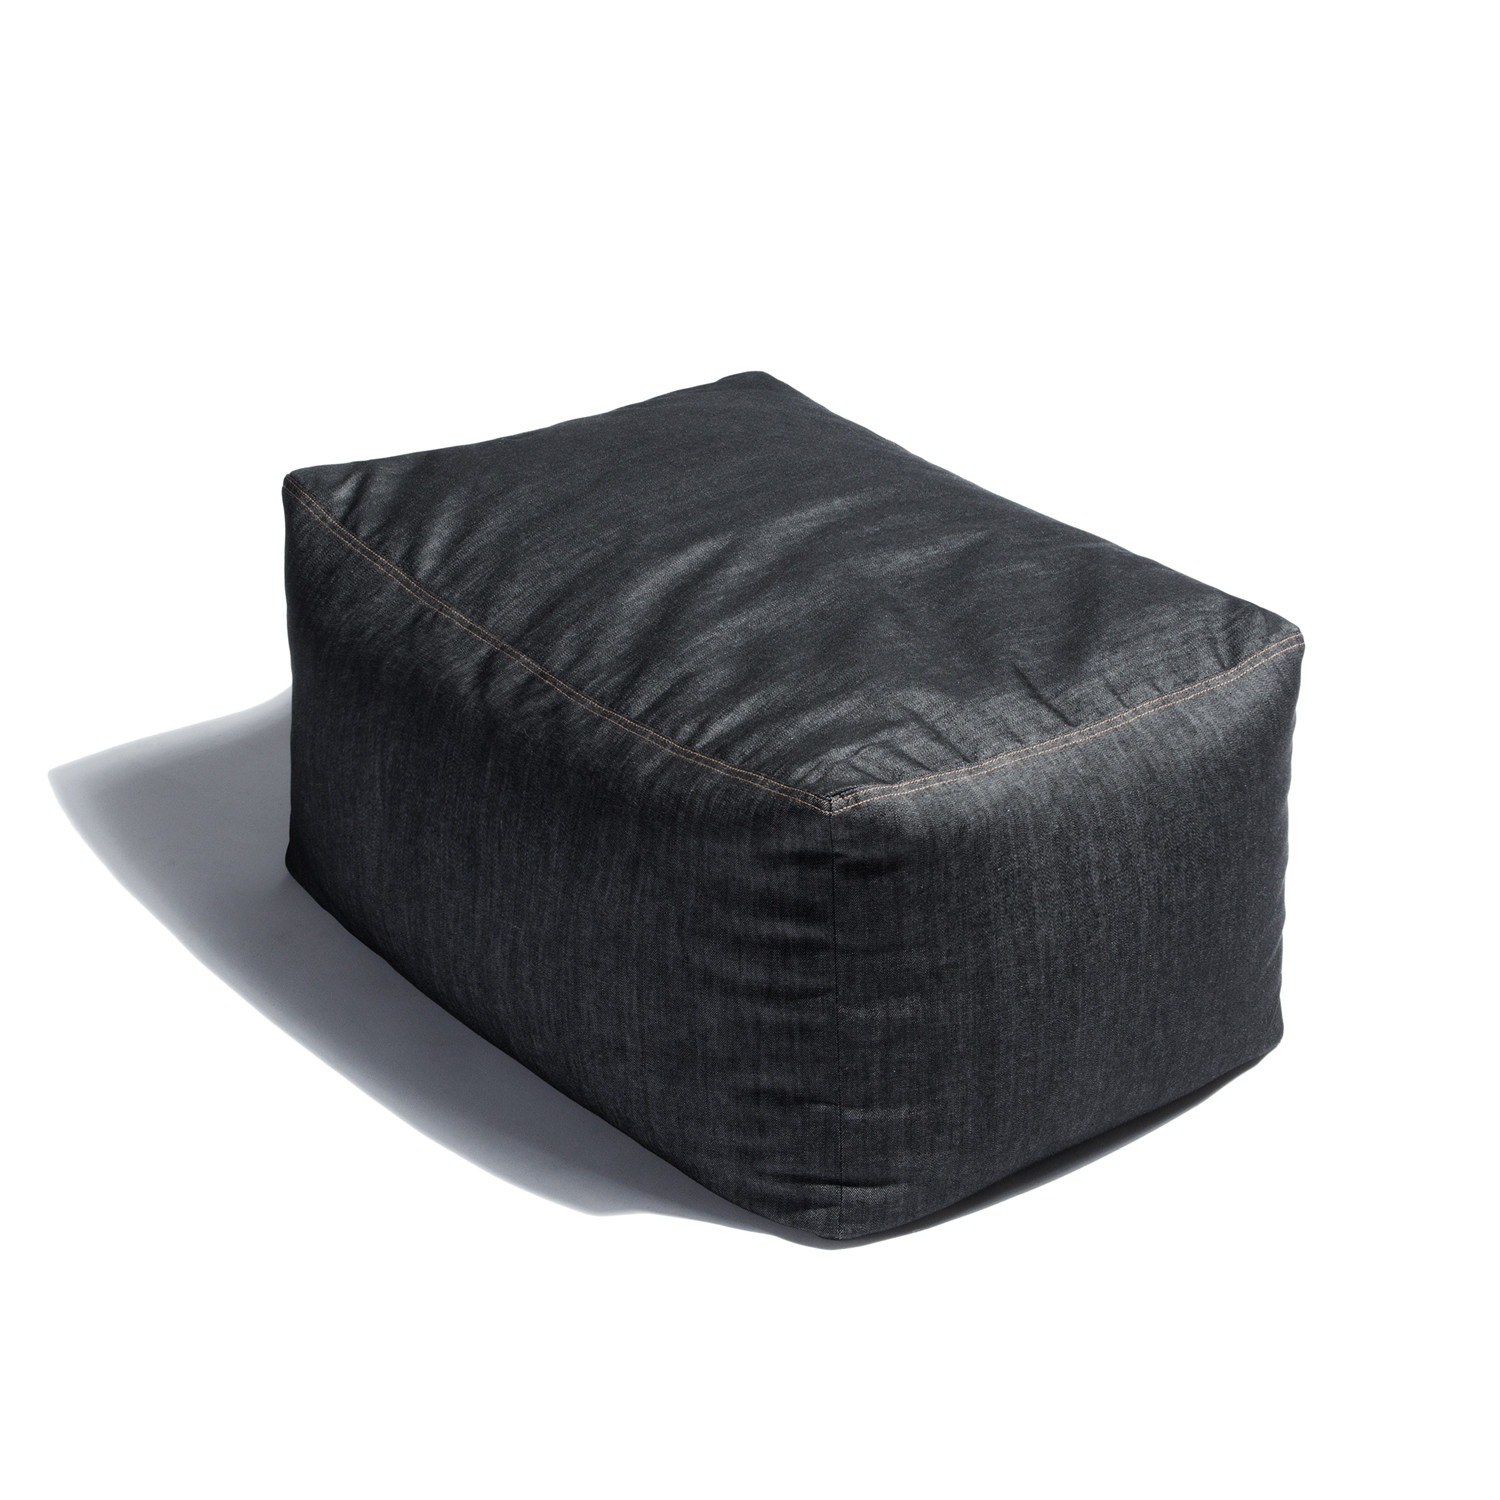 denim bean bag chair bed sleeper sale 43 ottoman jaxx touch of modern